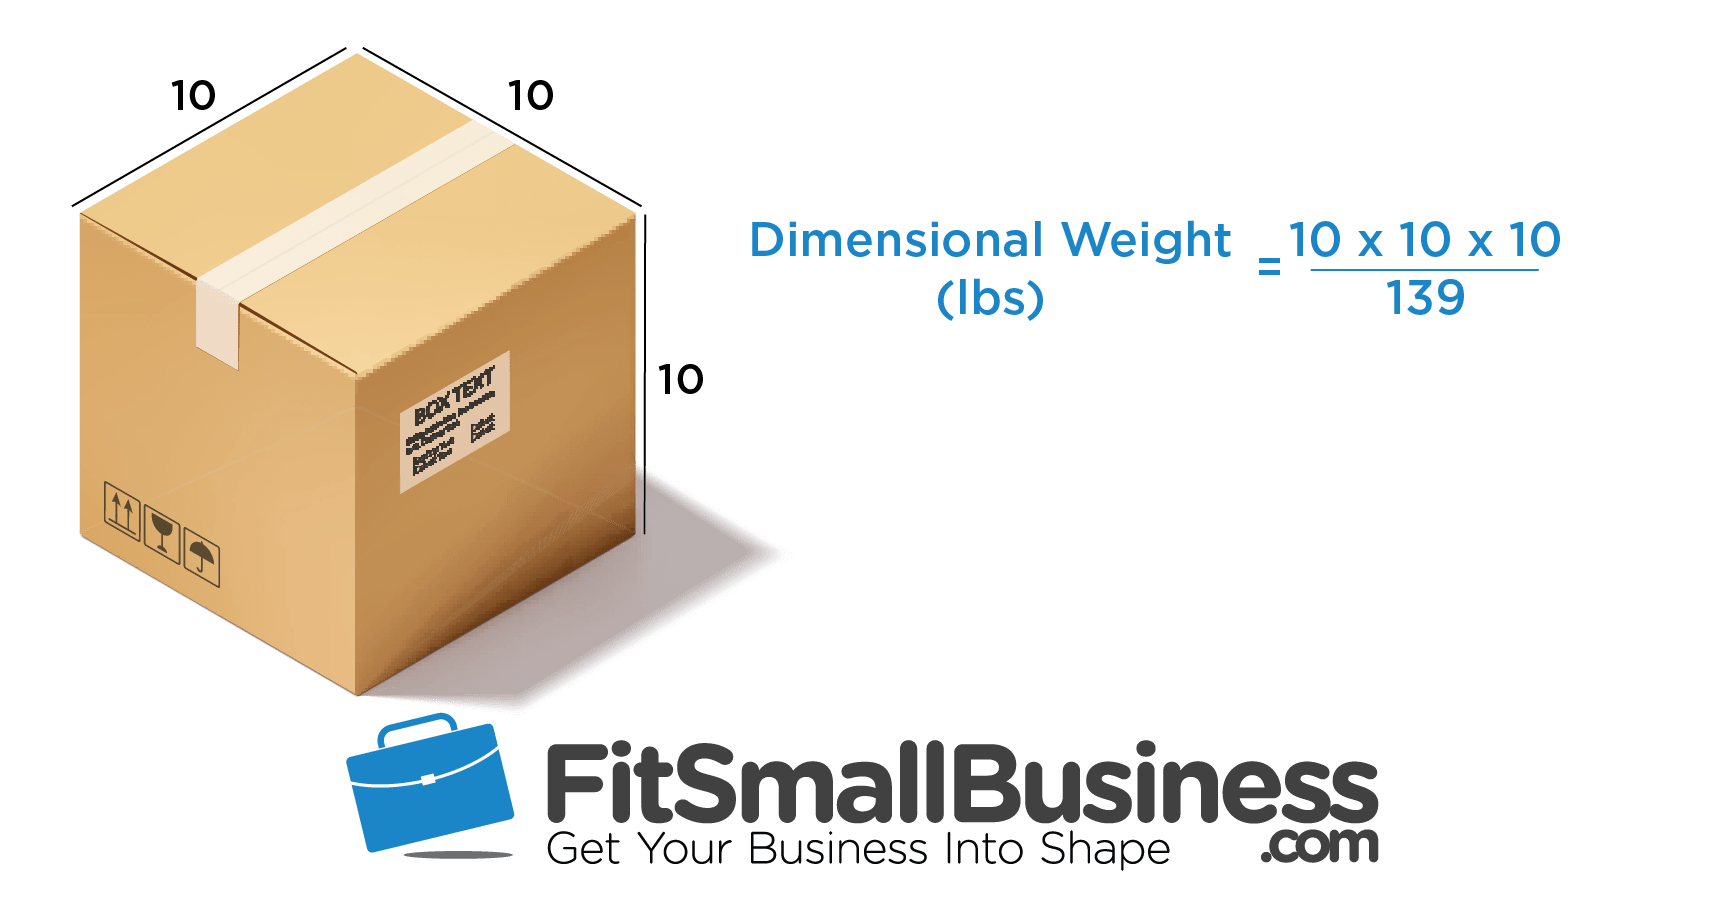 Dimensional Weight Calculator - UPS and FedEx for a 10 in box